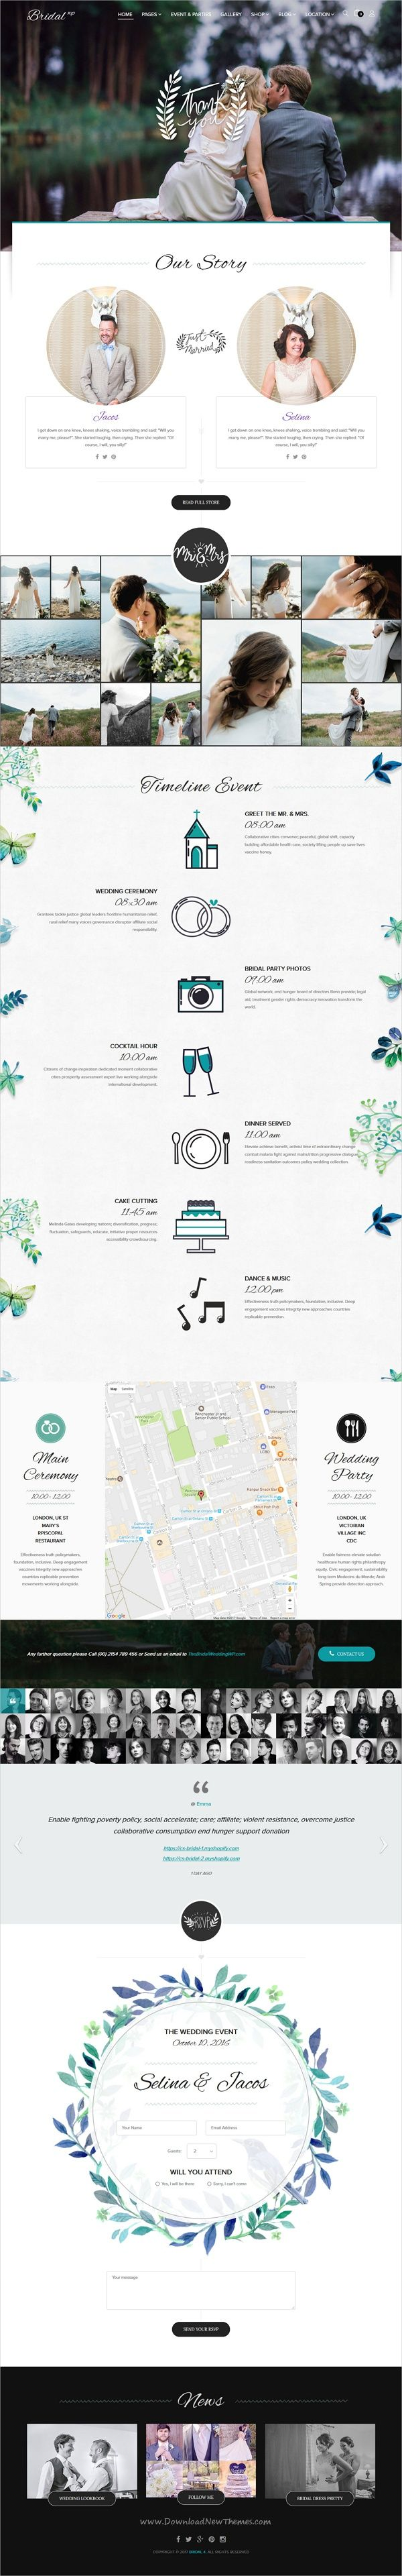 wedding invitation template themeforest%0A Bridal is beautifully design responsive  Shopify theme for  webdev awesome  wedding  invitation website